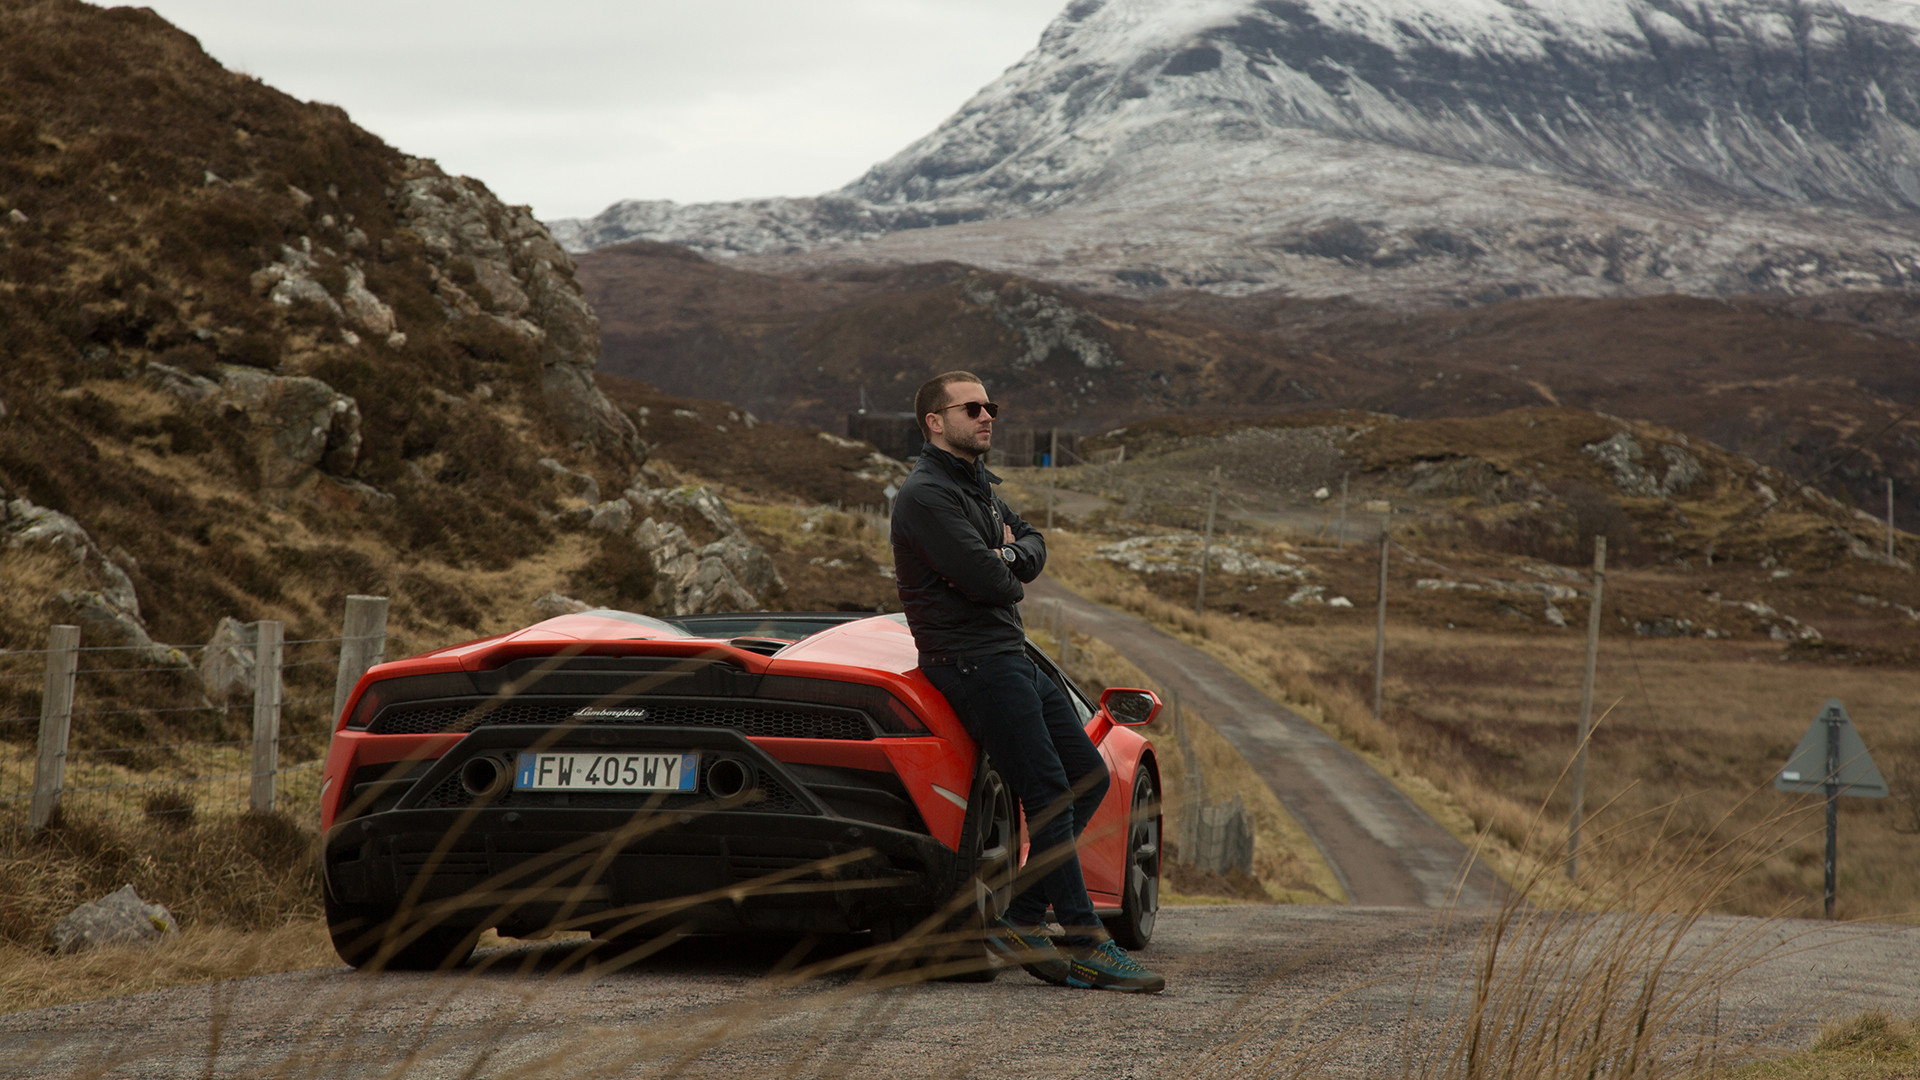 Lamborghini Huracan EVO Spyder on Scotland's North Coast 500 Photographed by Michael Shelford